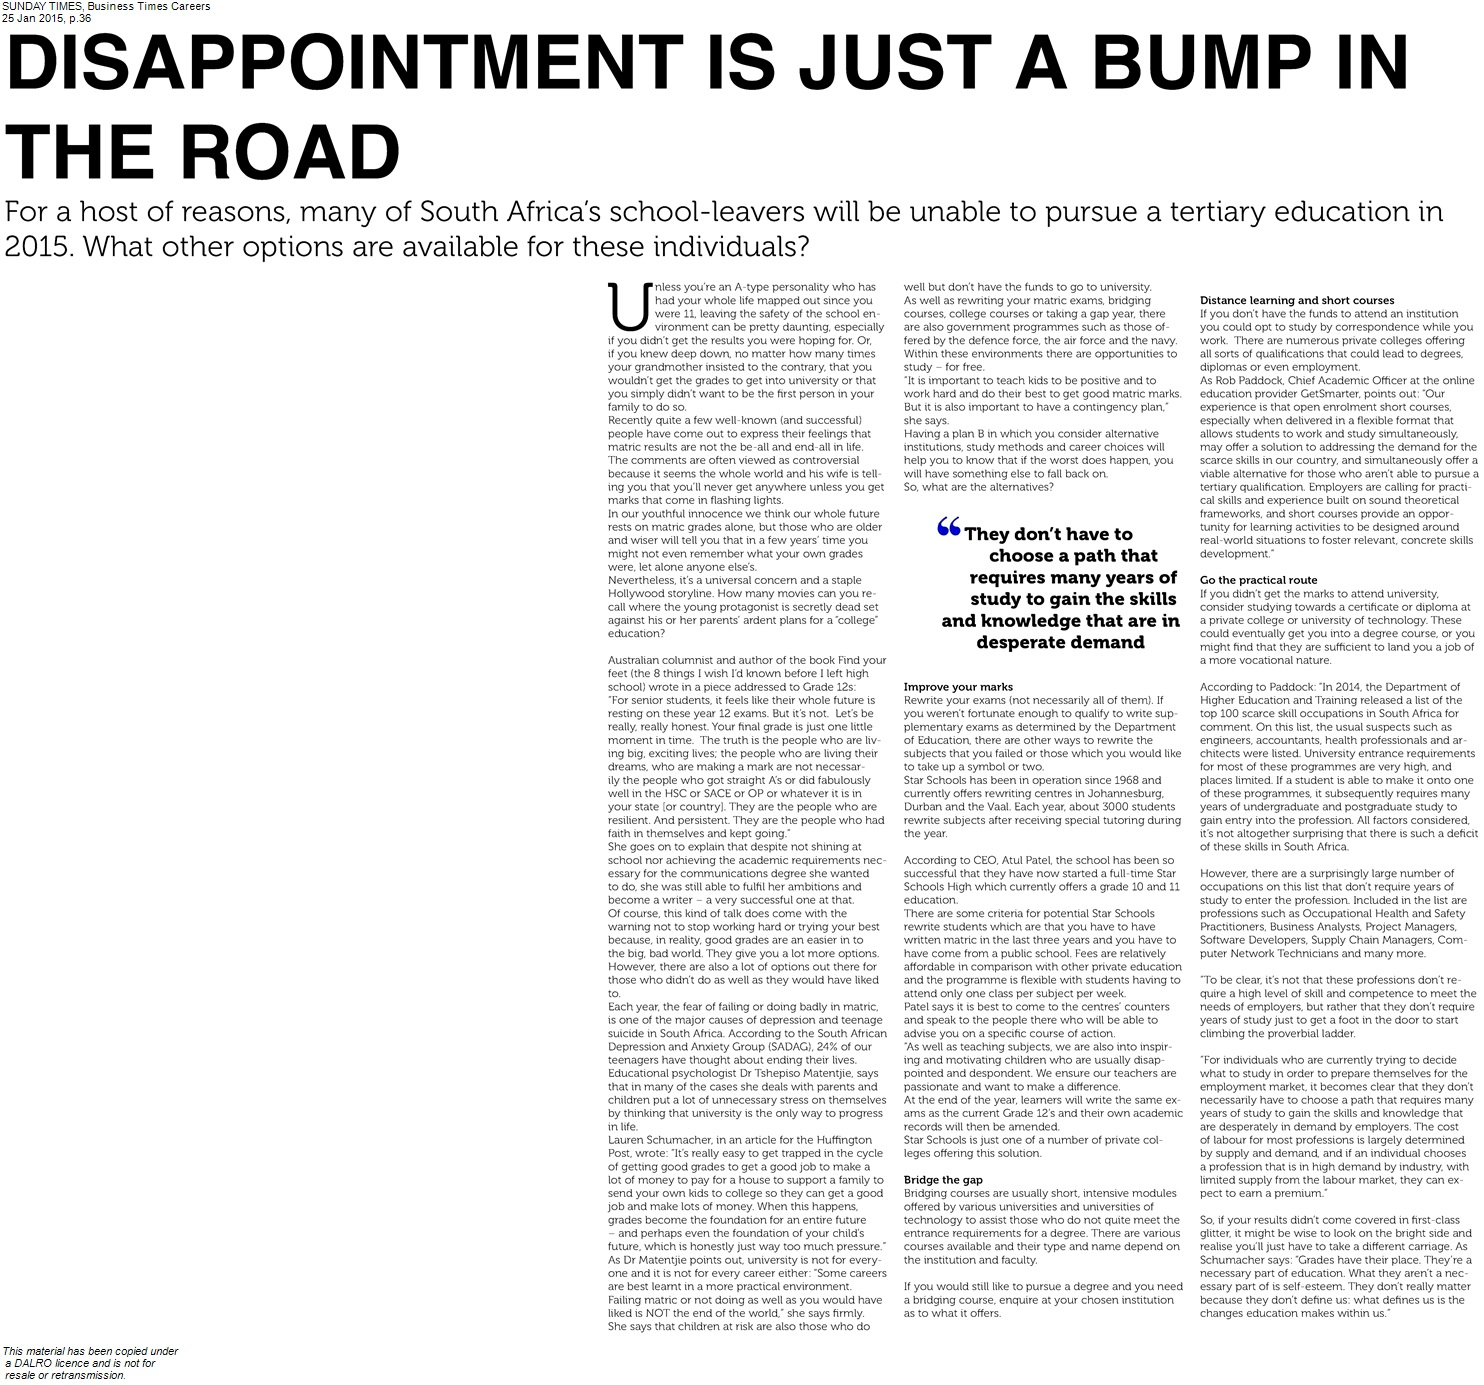 disappointment-is-just-a-bump-in-the-road